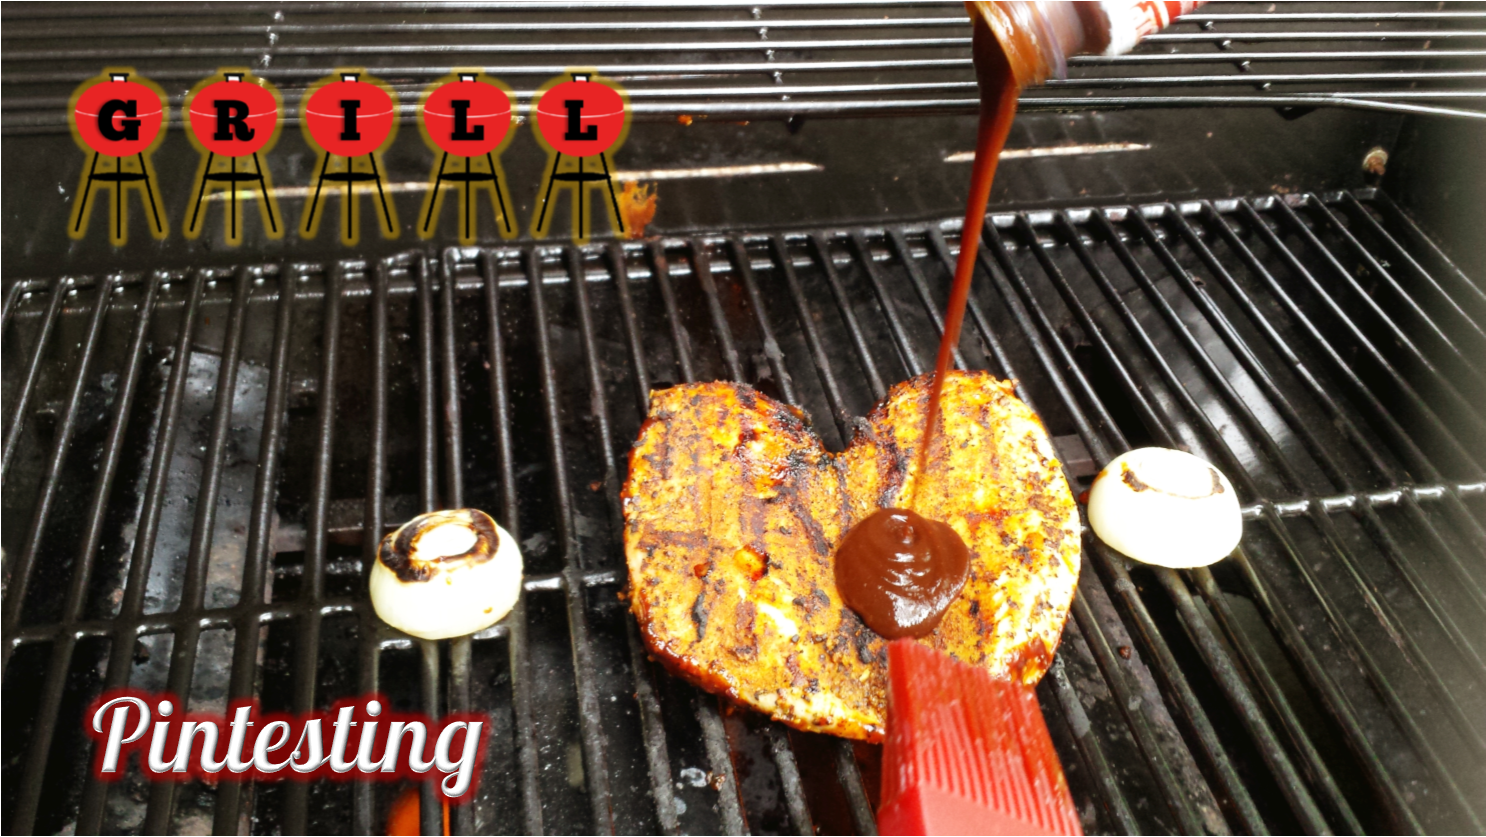 Pintesting How to make your grill non-stick